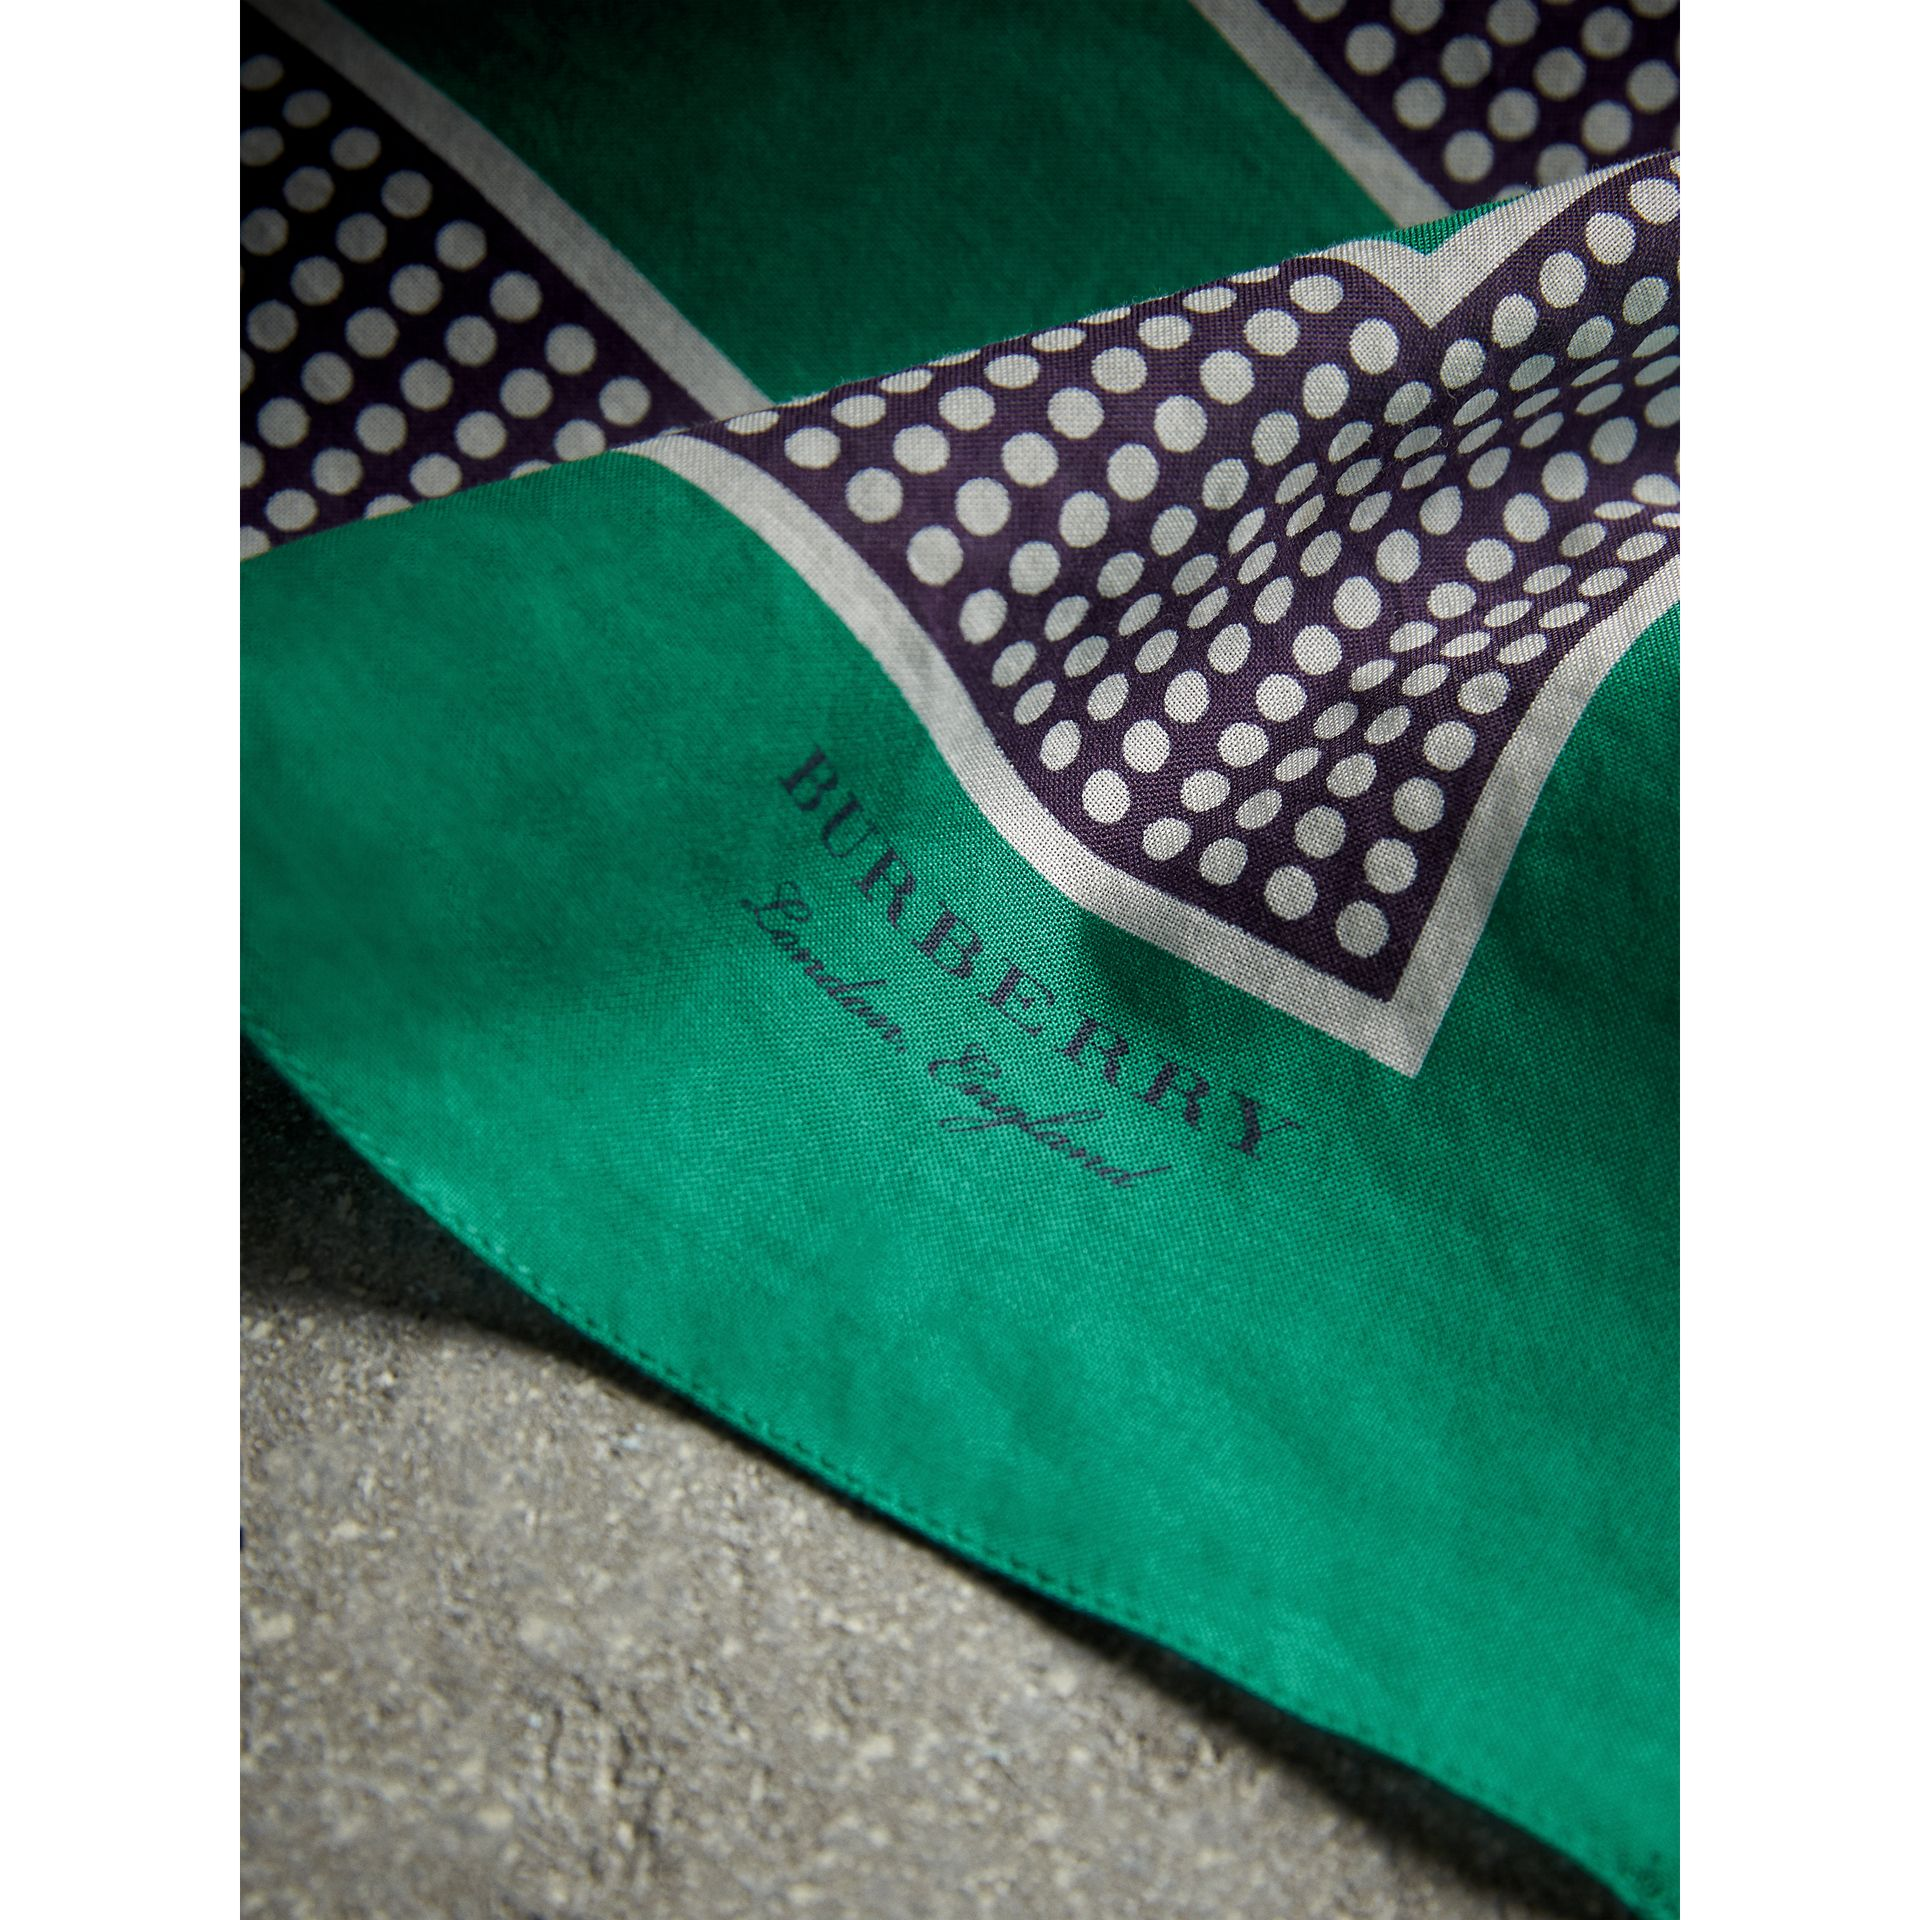 Dot and Stripe Print Cotton Square Scarf in Tourmaline Green | Burberry - gallery image 2